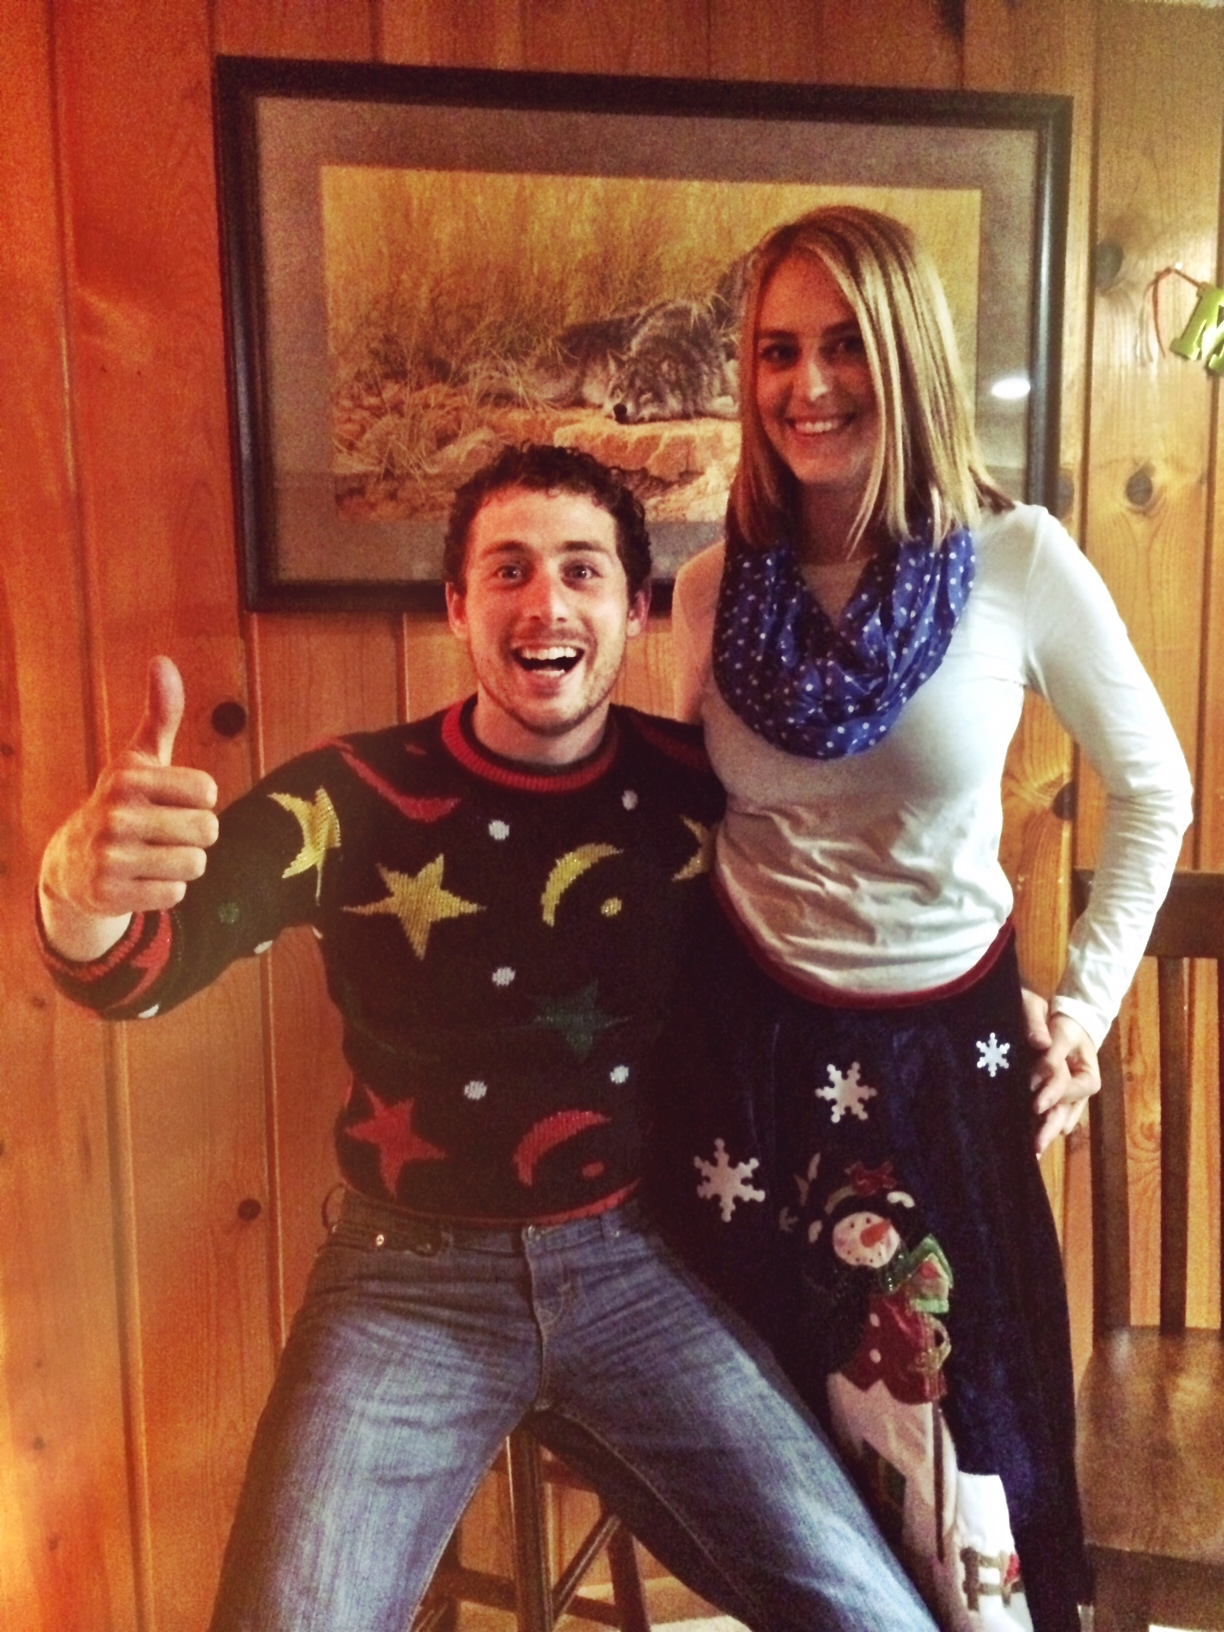 DIY Ugly Sweater Skirt - Mon and Jon at party